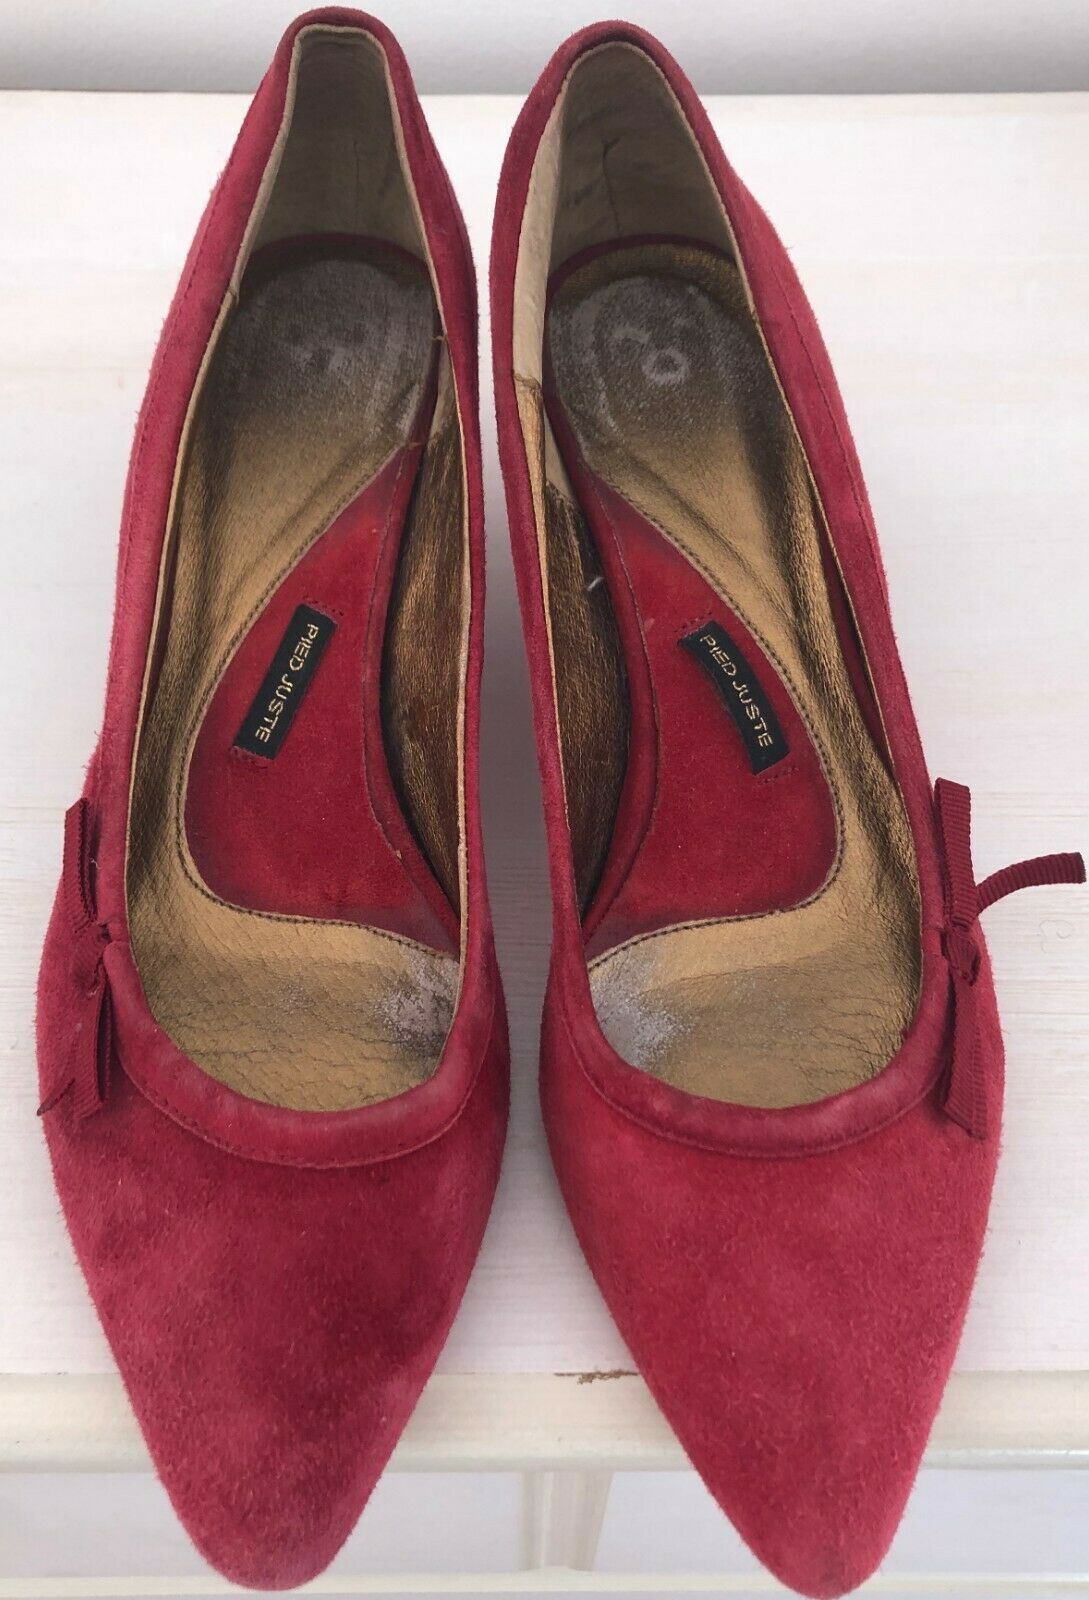 Anthropologie Pied Juste Red Suede Pointed toe Kitten Heels- Size 9